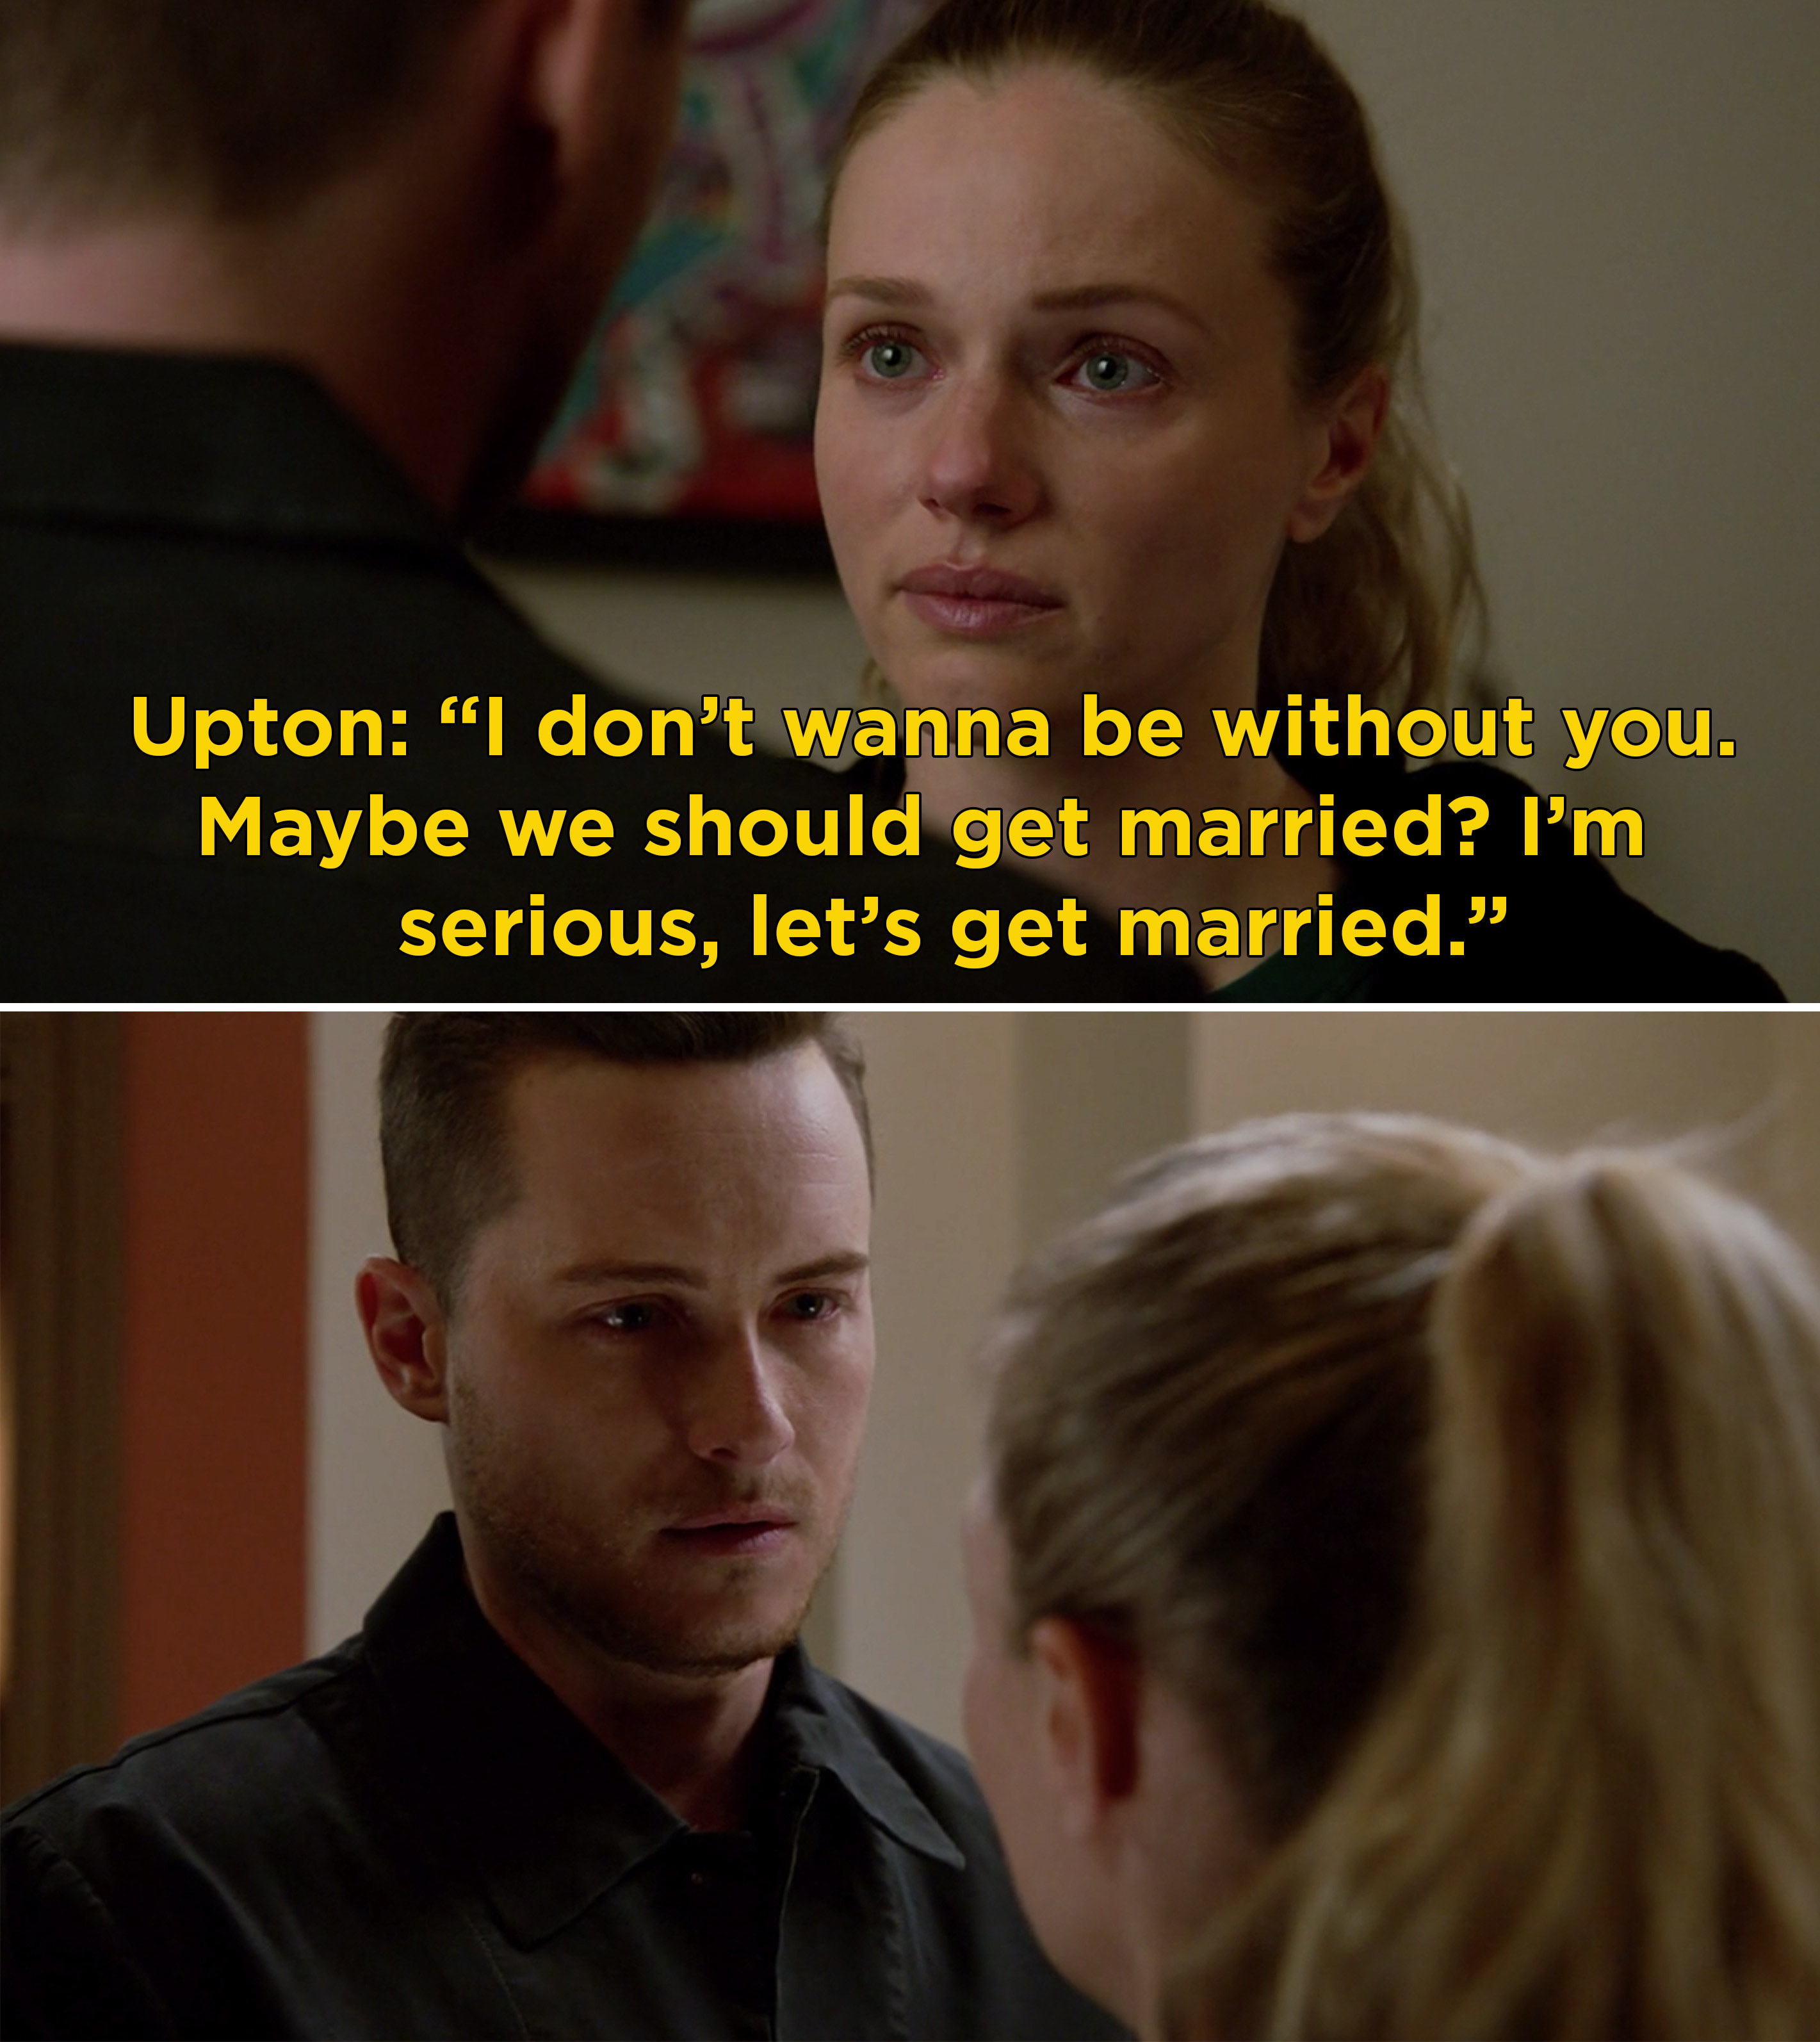 """Upton saying, """"I don't wanna be without you. Maybe we should get married? I'm serious, let's get married"""""""